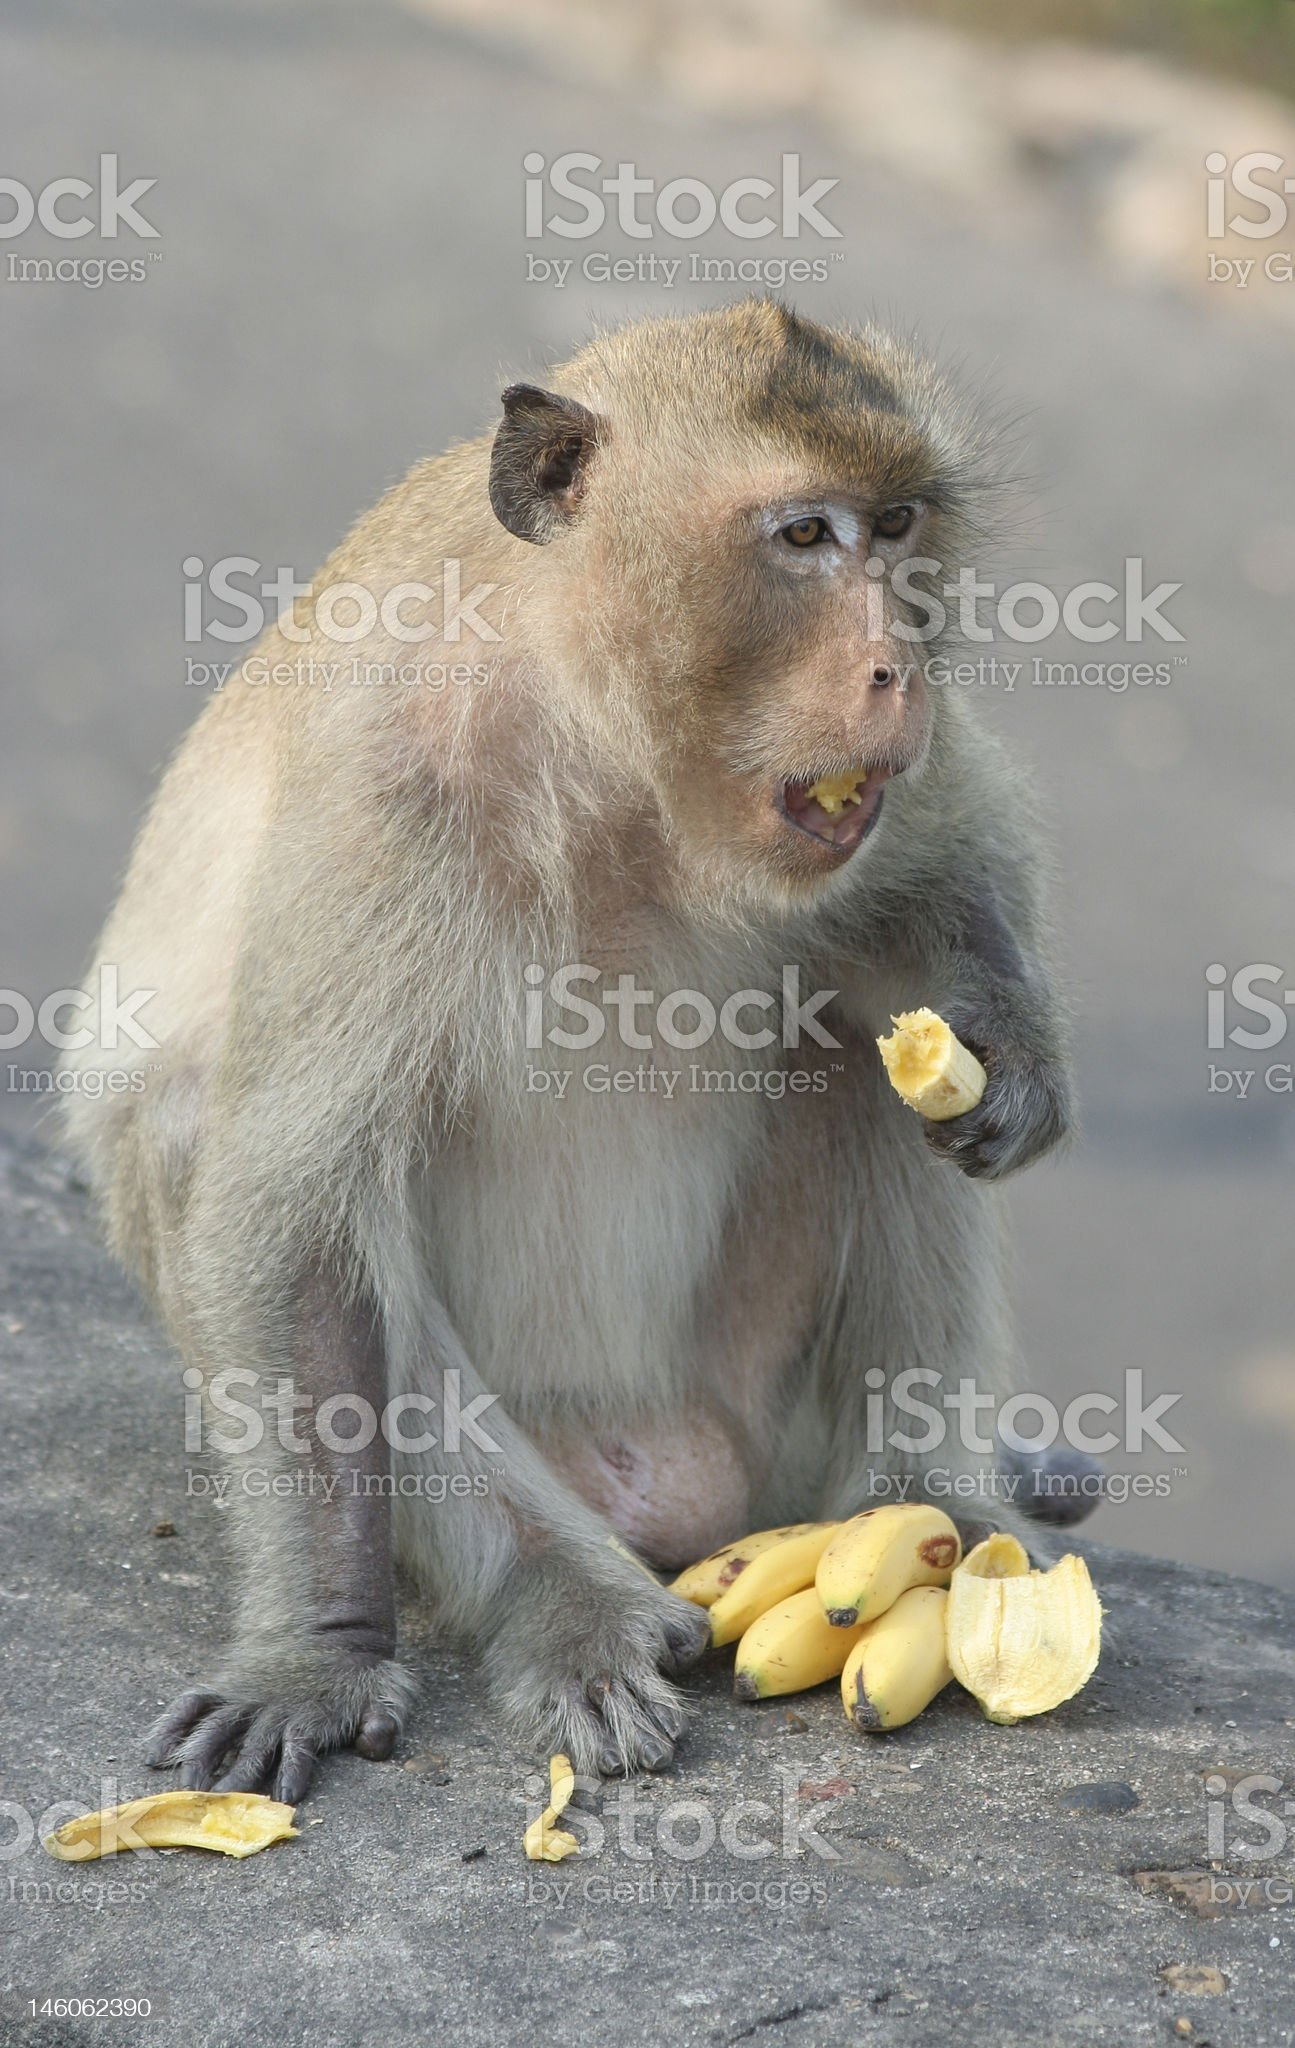 Monkey with bananas royalty-free stock photo